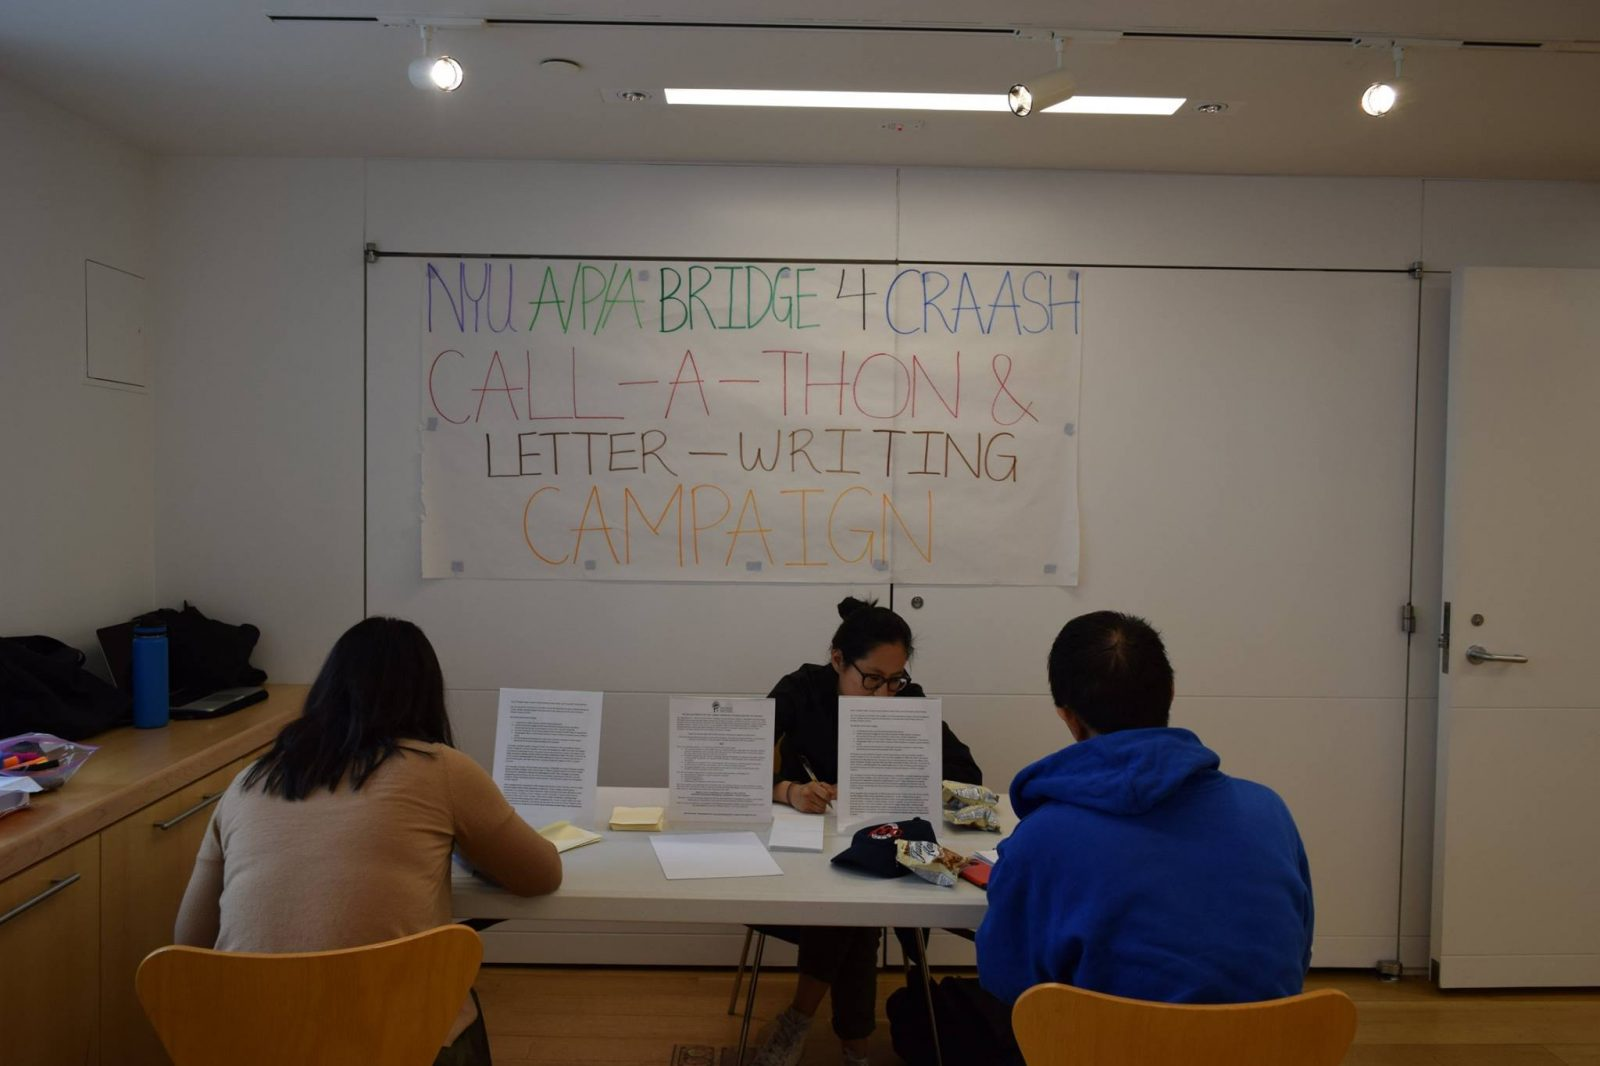 Photograph of three students working on a call-a-thon and letter-writing campaign